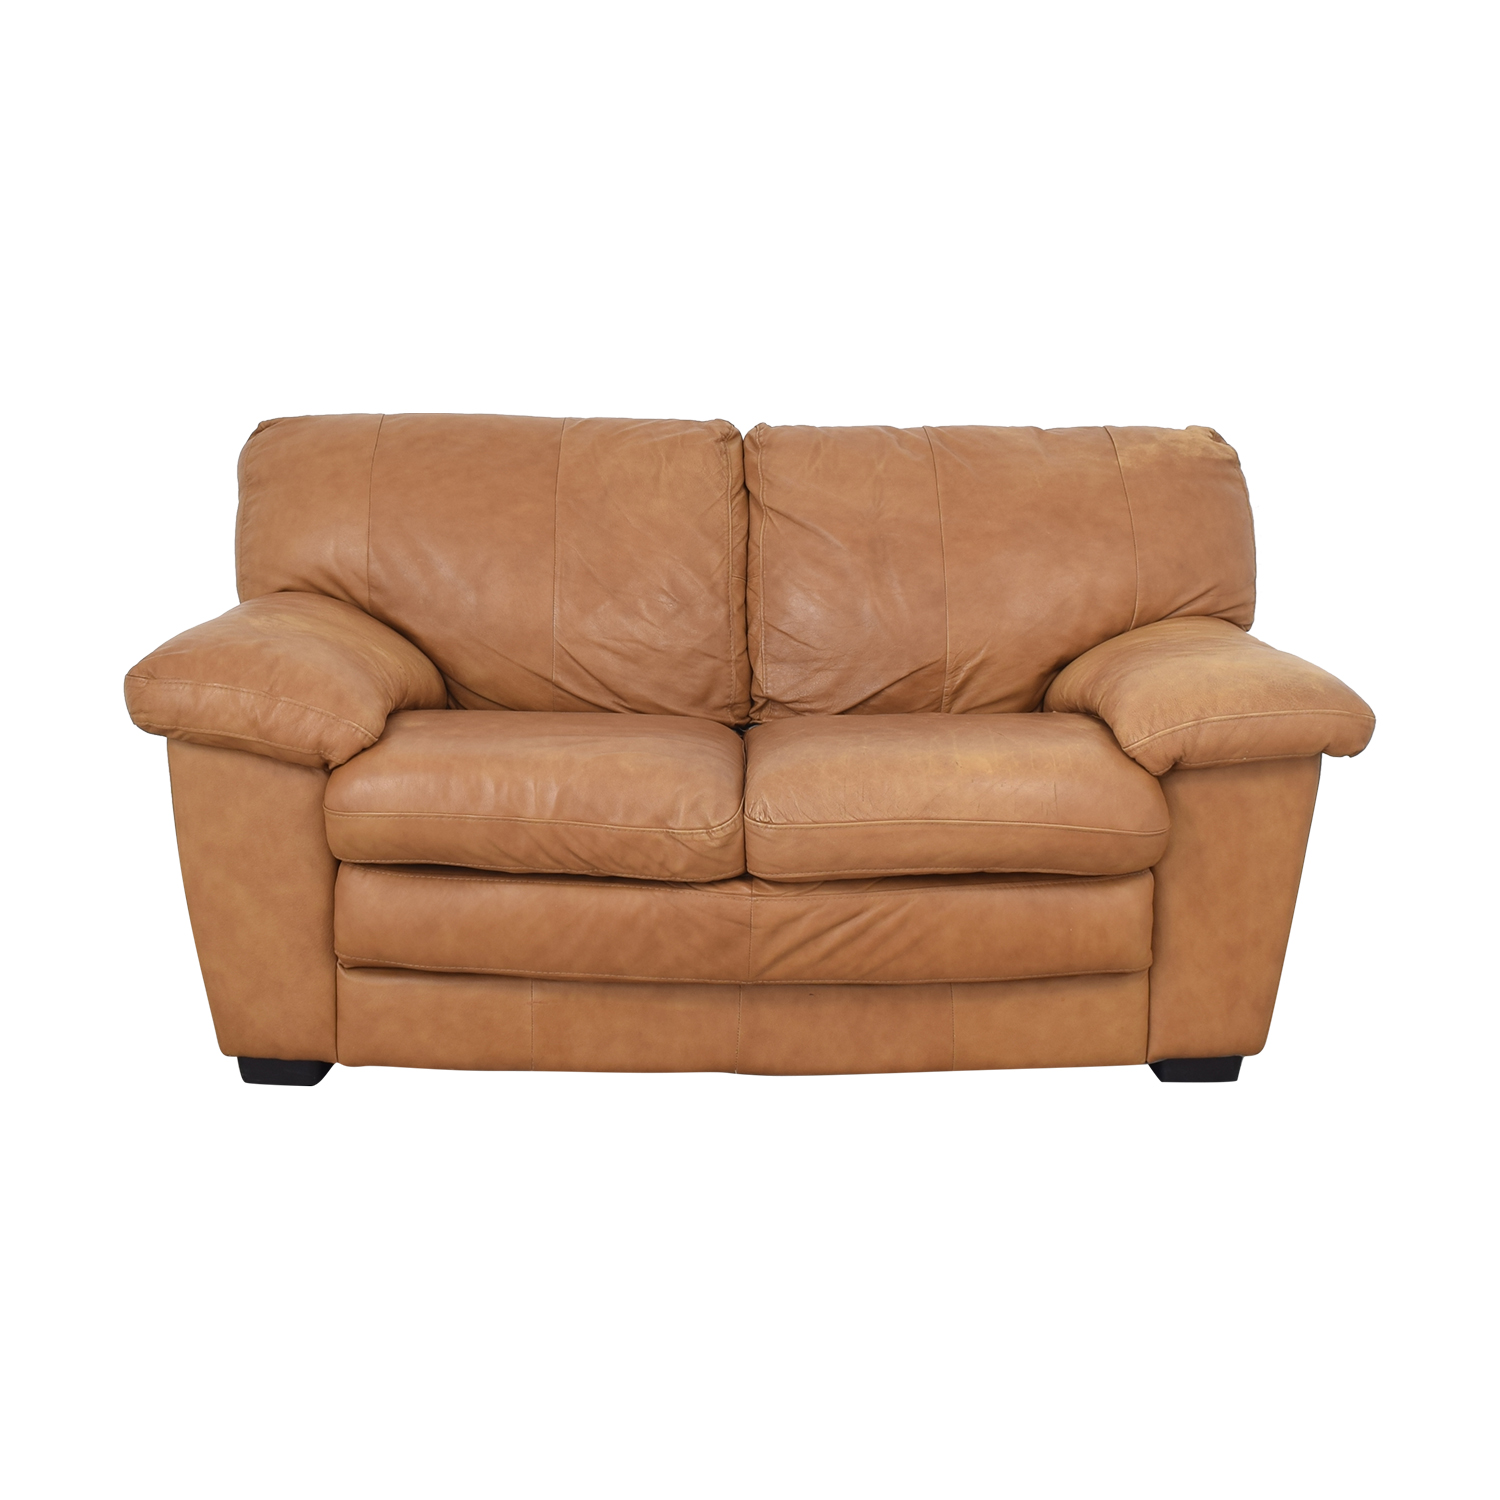 62 Off Natale Furniture Natale Two Seat Loveseat Sofas